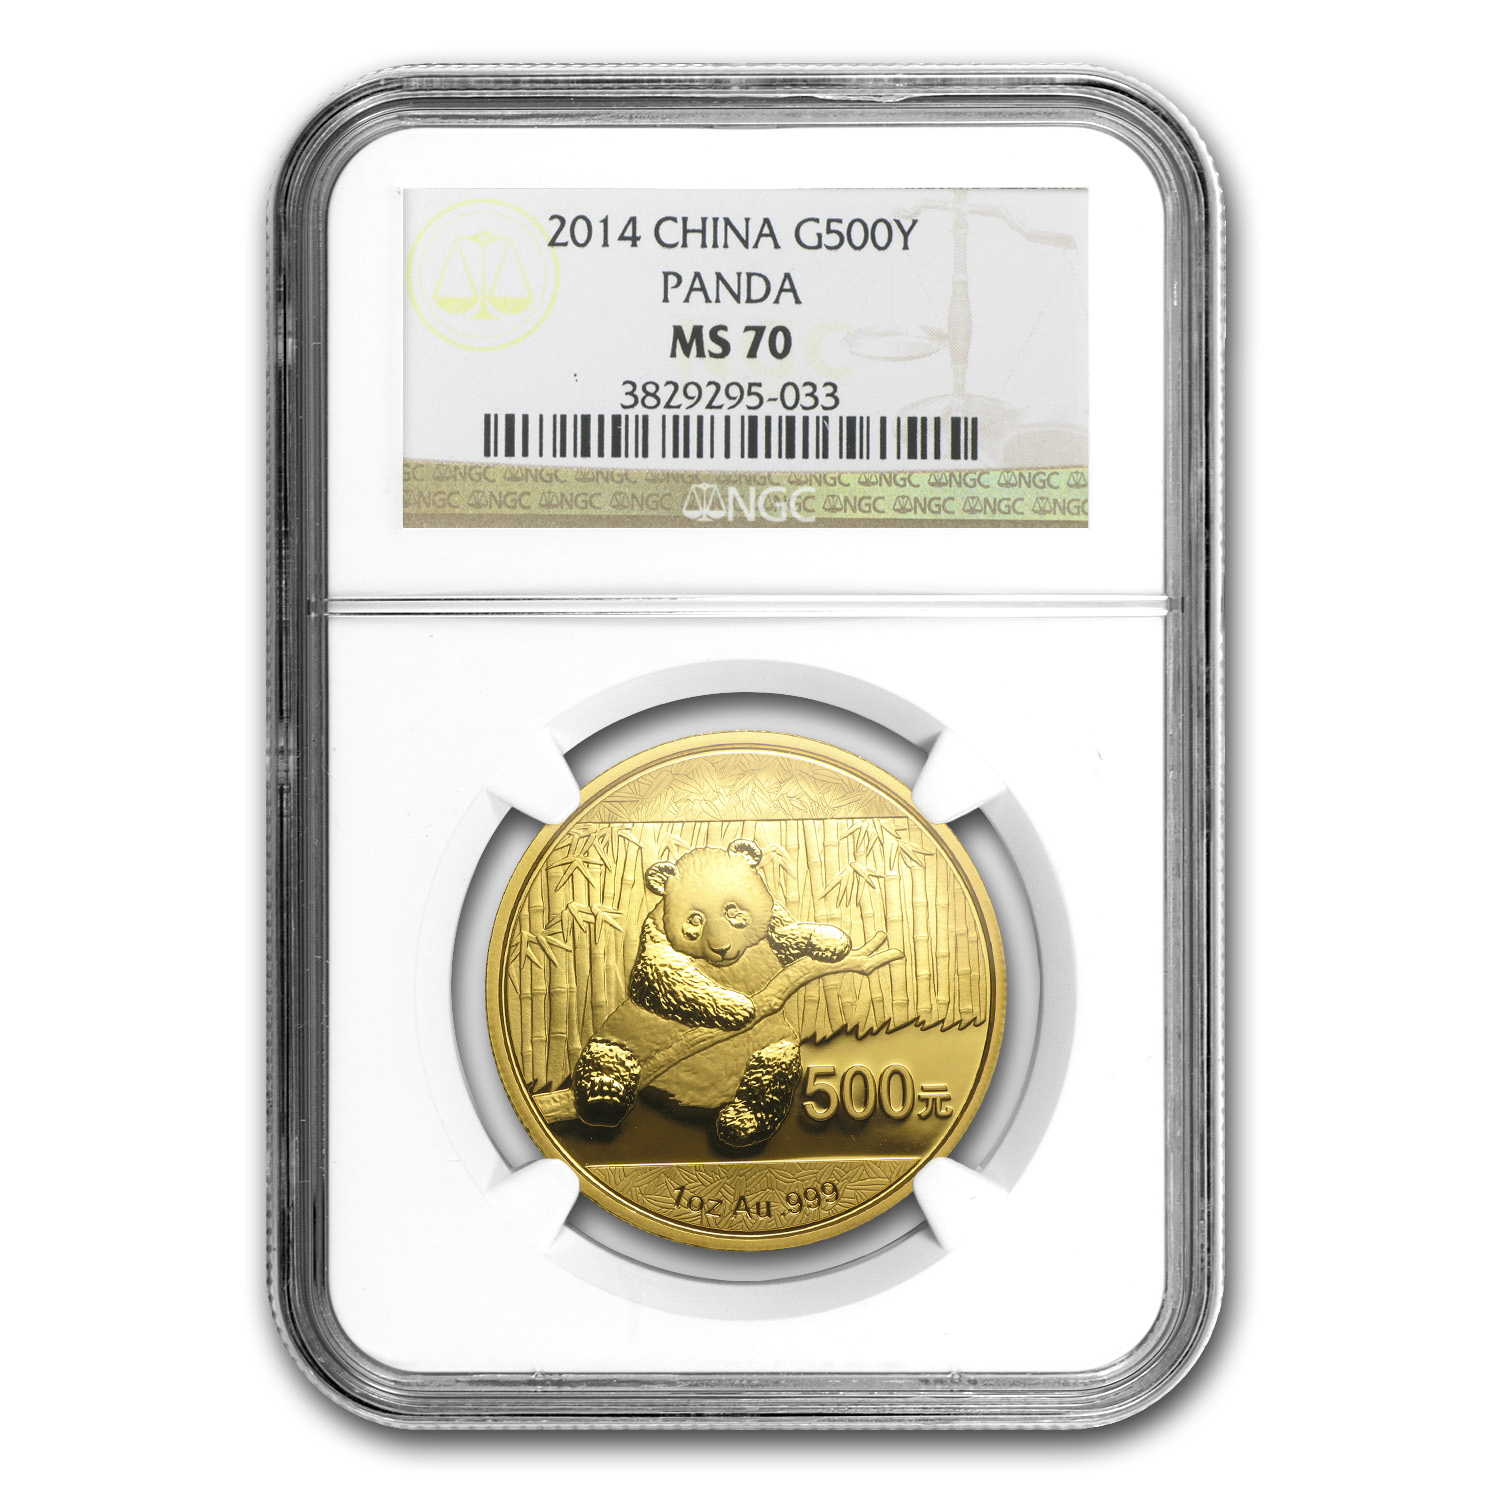 2014 China 1 oz Gold Panda MS-70 NGC